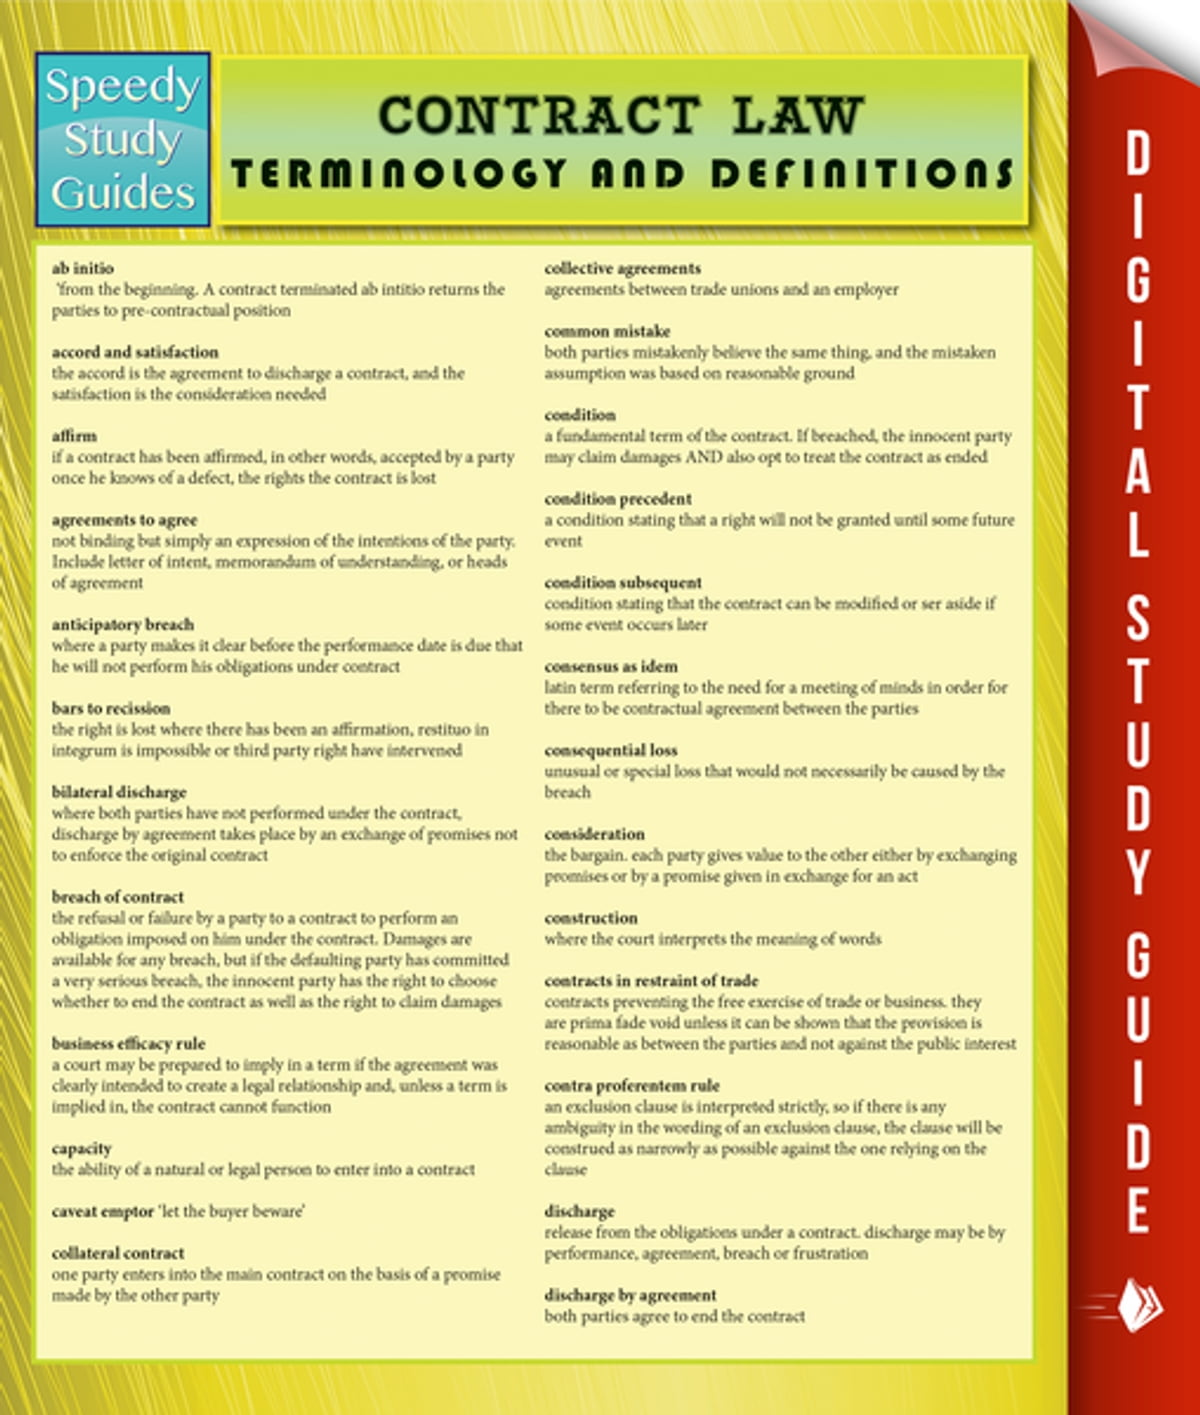 Contract Law Terminology and Definitions (Speedy Study Guide) eBook by  Speedy Publishing - 9781635013559 | Rakuten Kobo